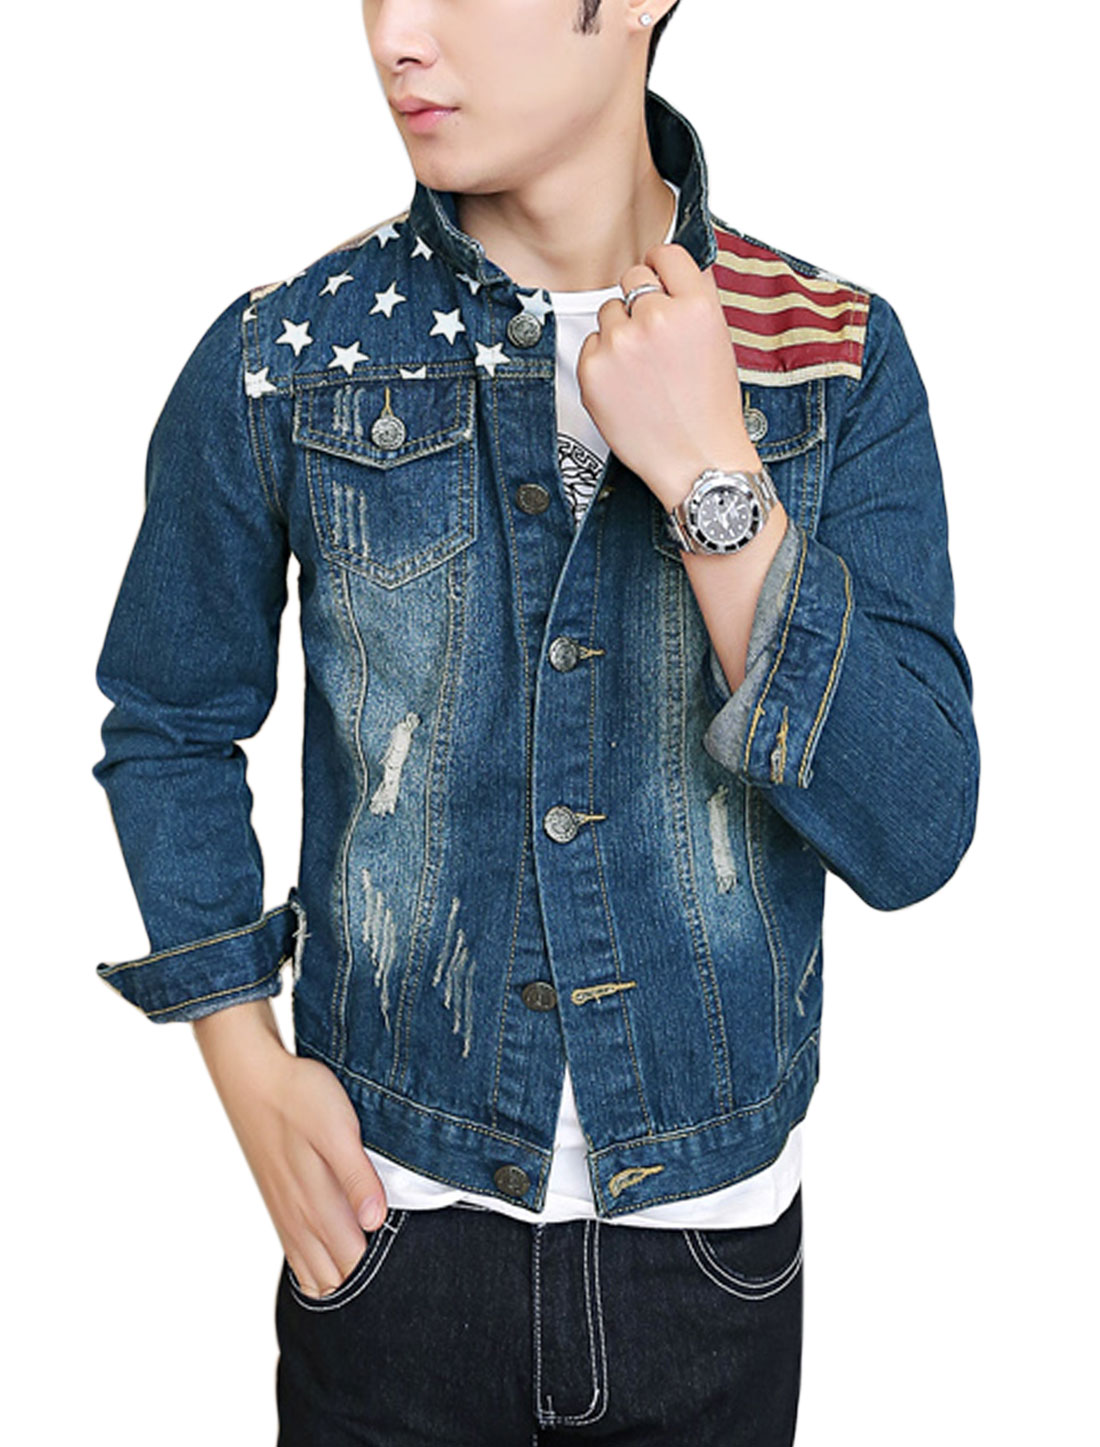 Men Point Collar Signle Breasted Stars Stripes Pattern Casual Jean Jacket Dark Blue M